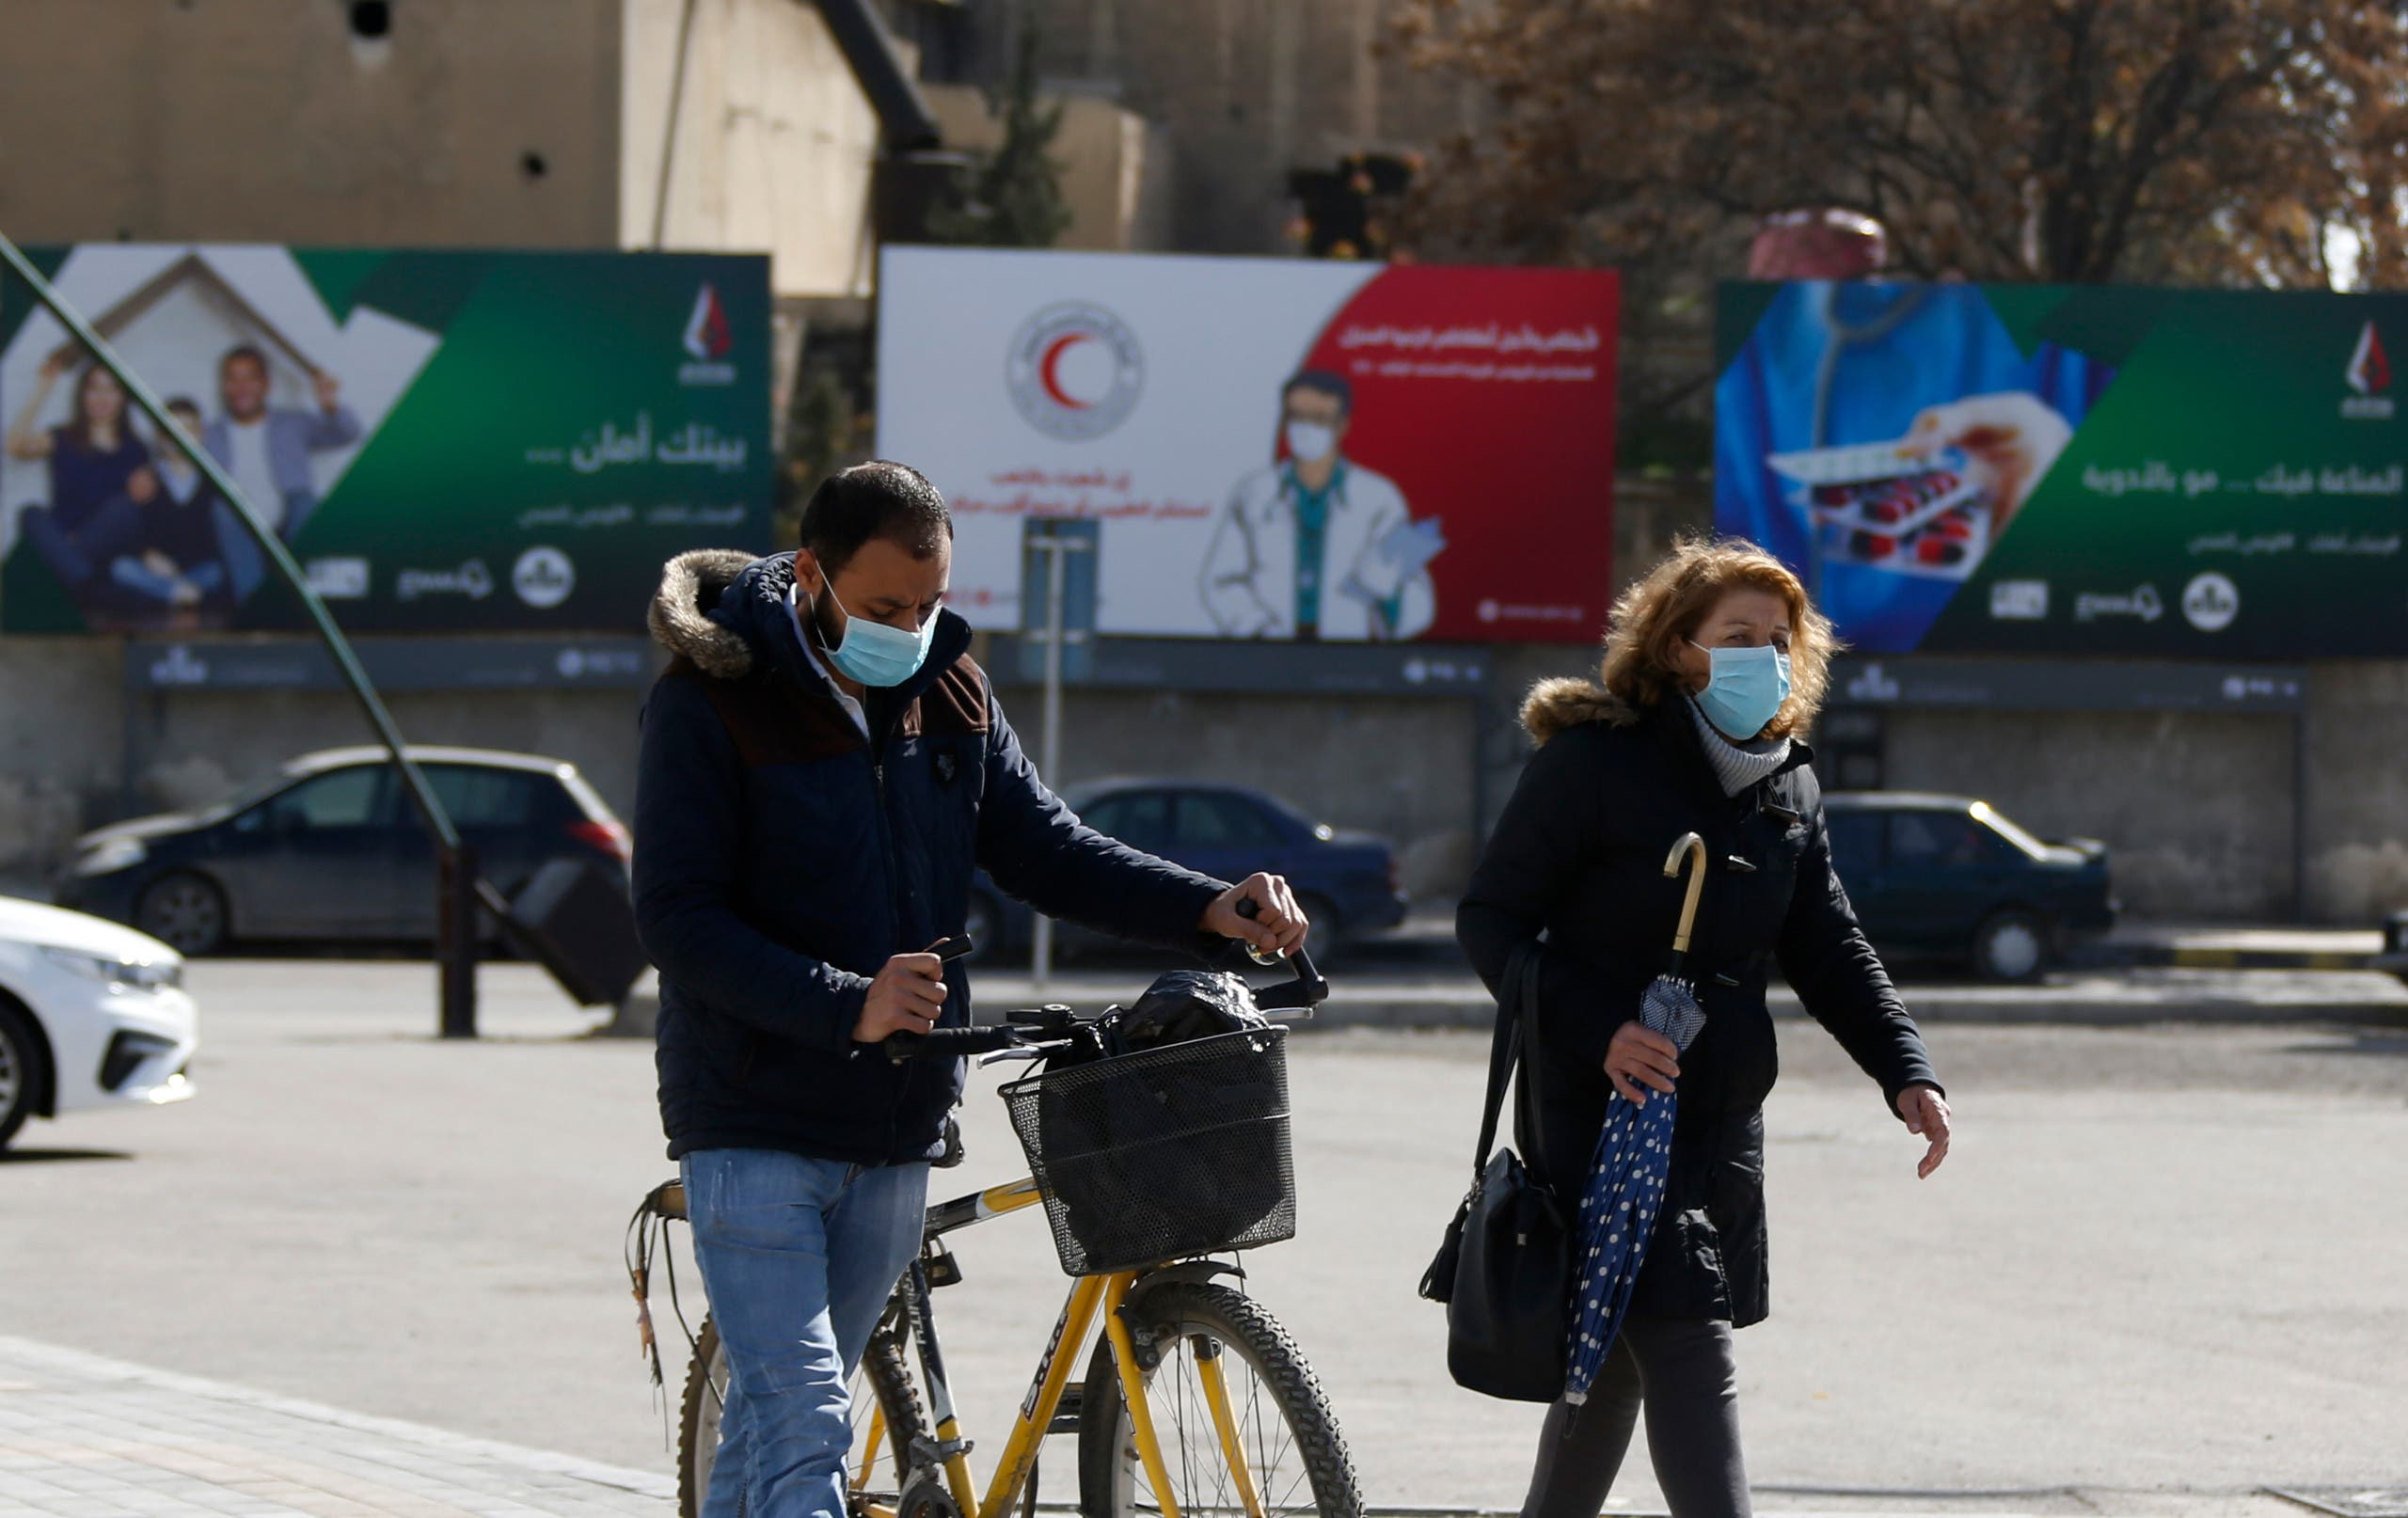 Syrians wearing face masks walk in front of posters informing about the novel coronavirus, in the capital Damascus on April 1, 2020. (AP)